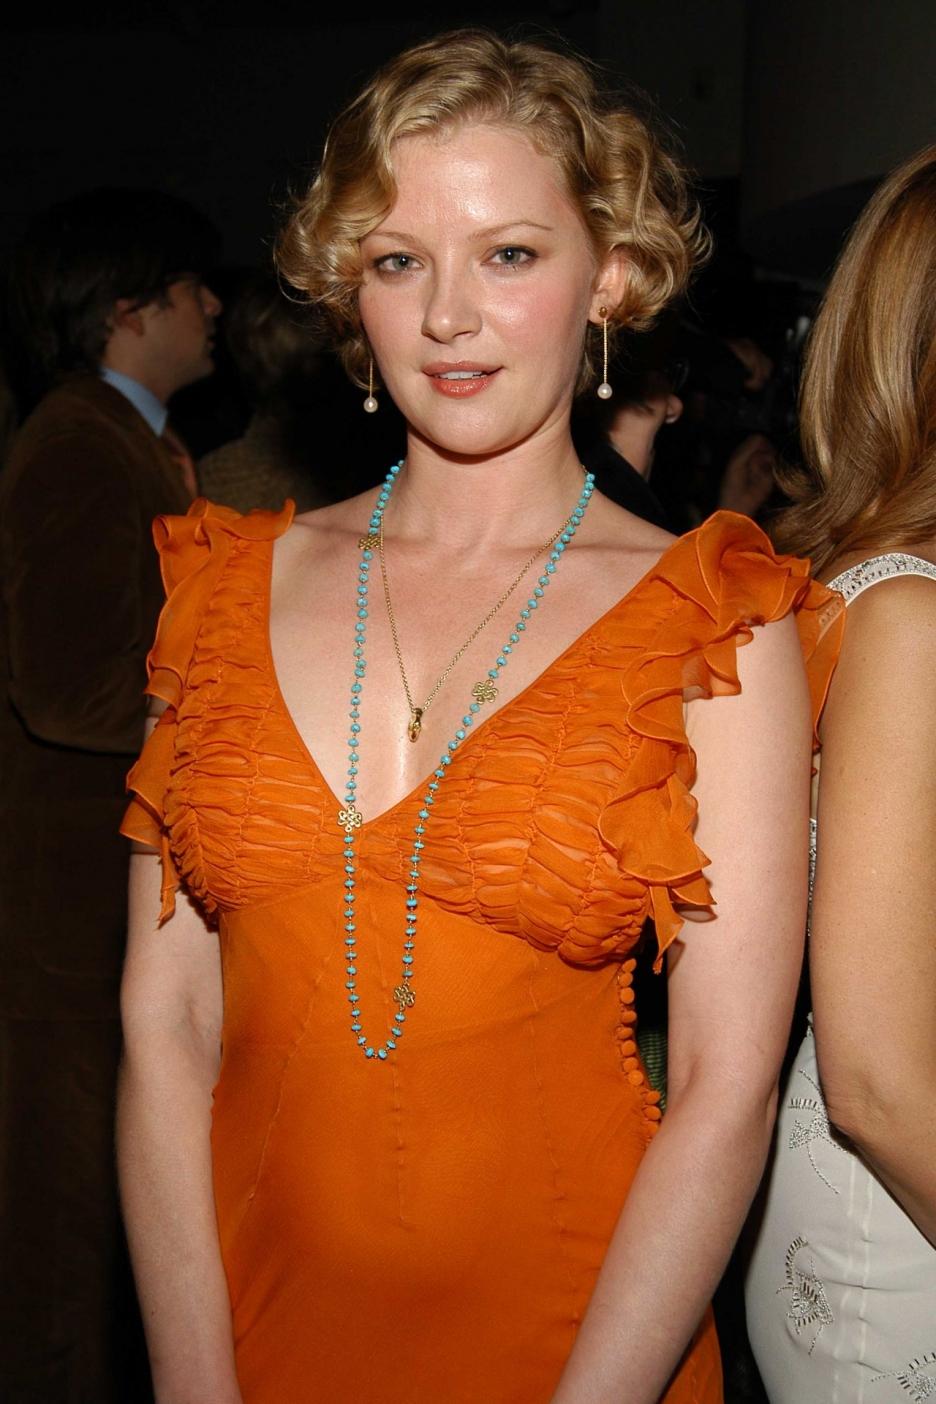 Gretchen mol boardwalk empire season 2 - 2 part 3